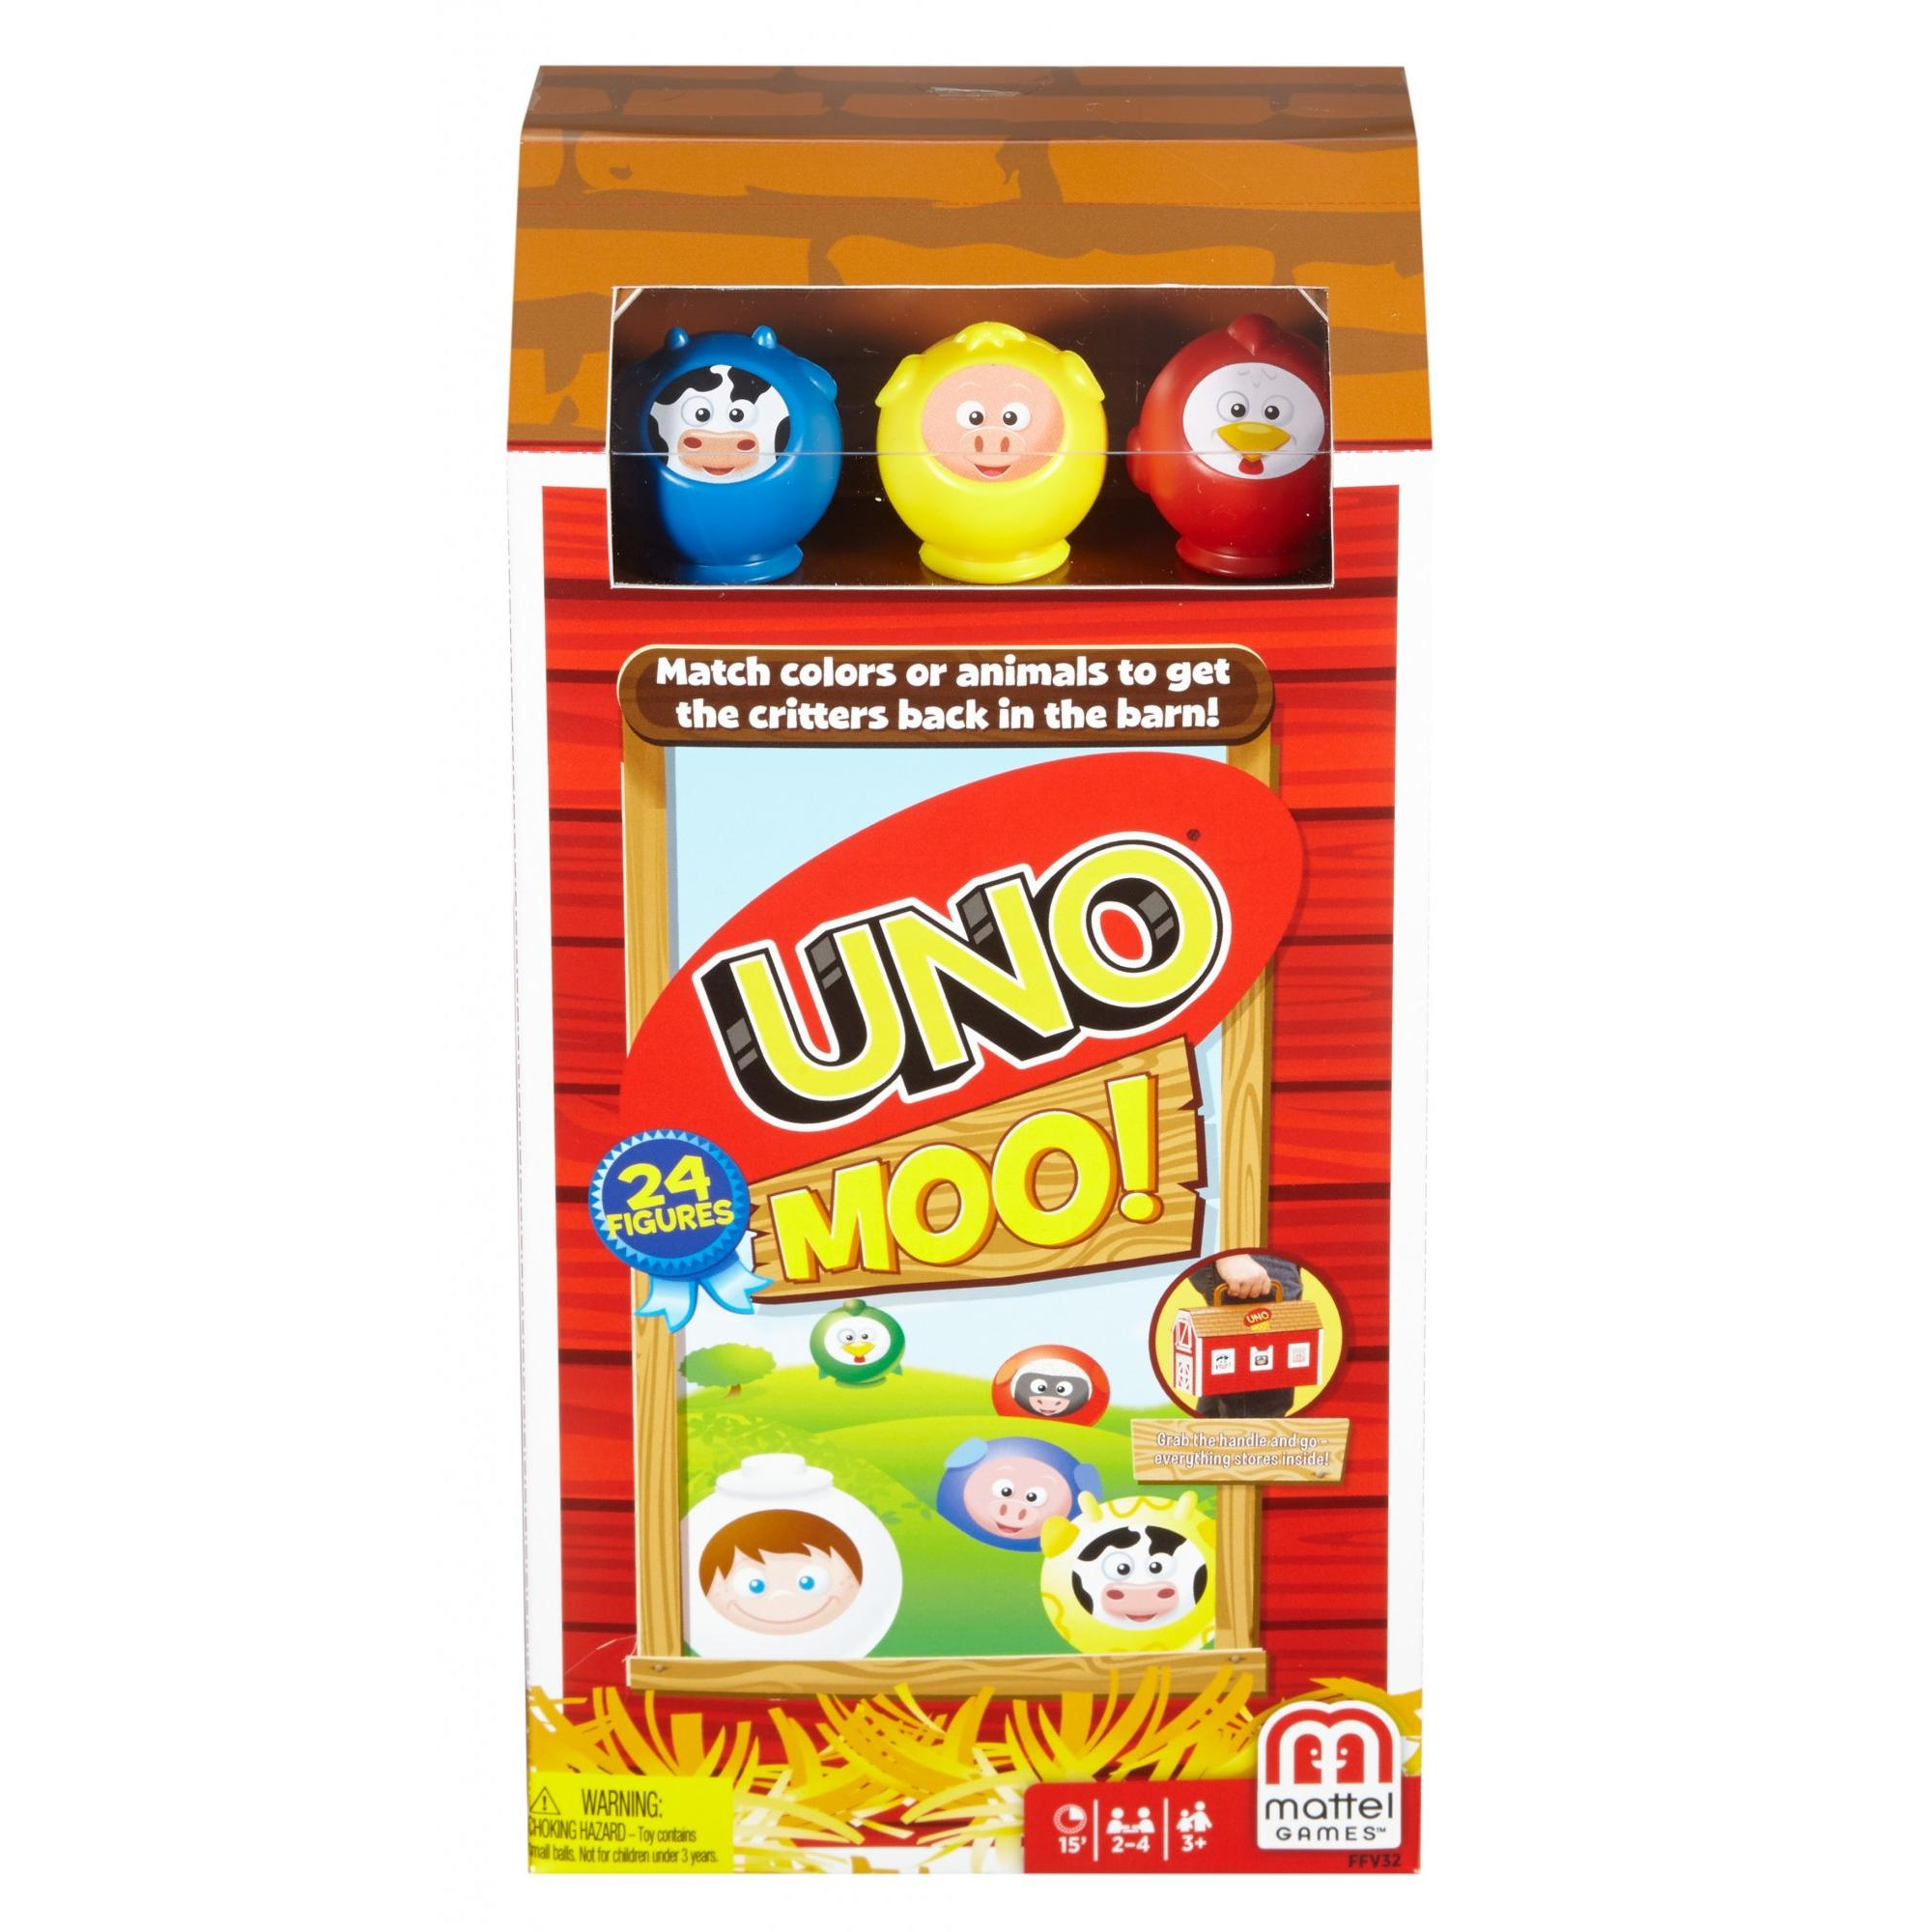 UNO Moo! Matching Animal Game for 2-4 Players Ages 3Y+